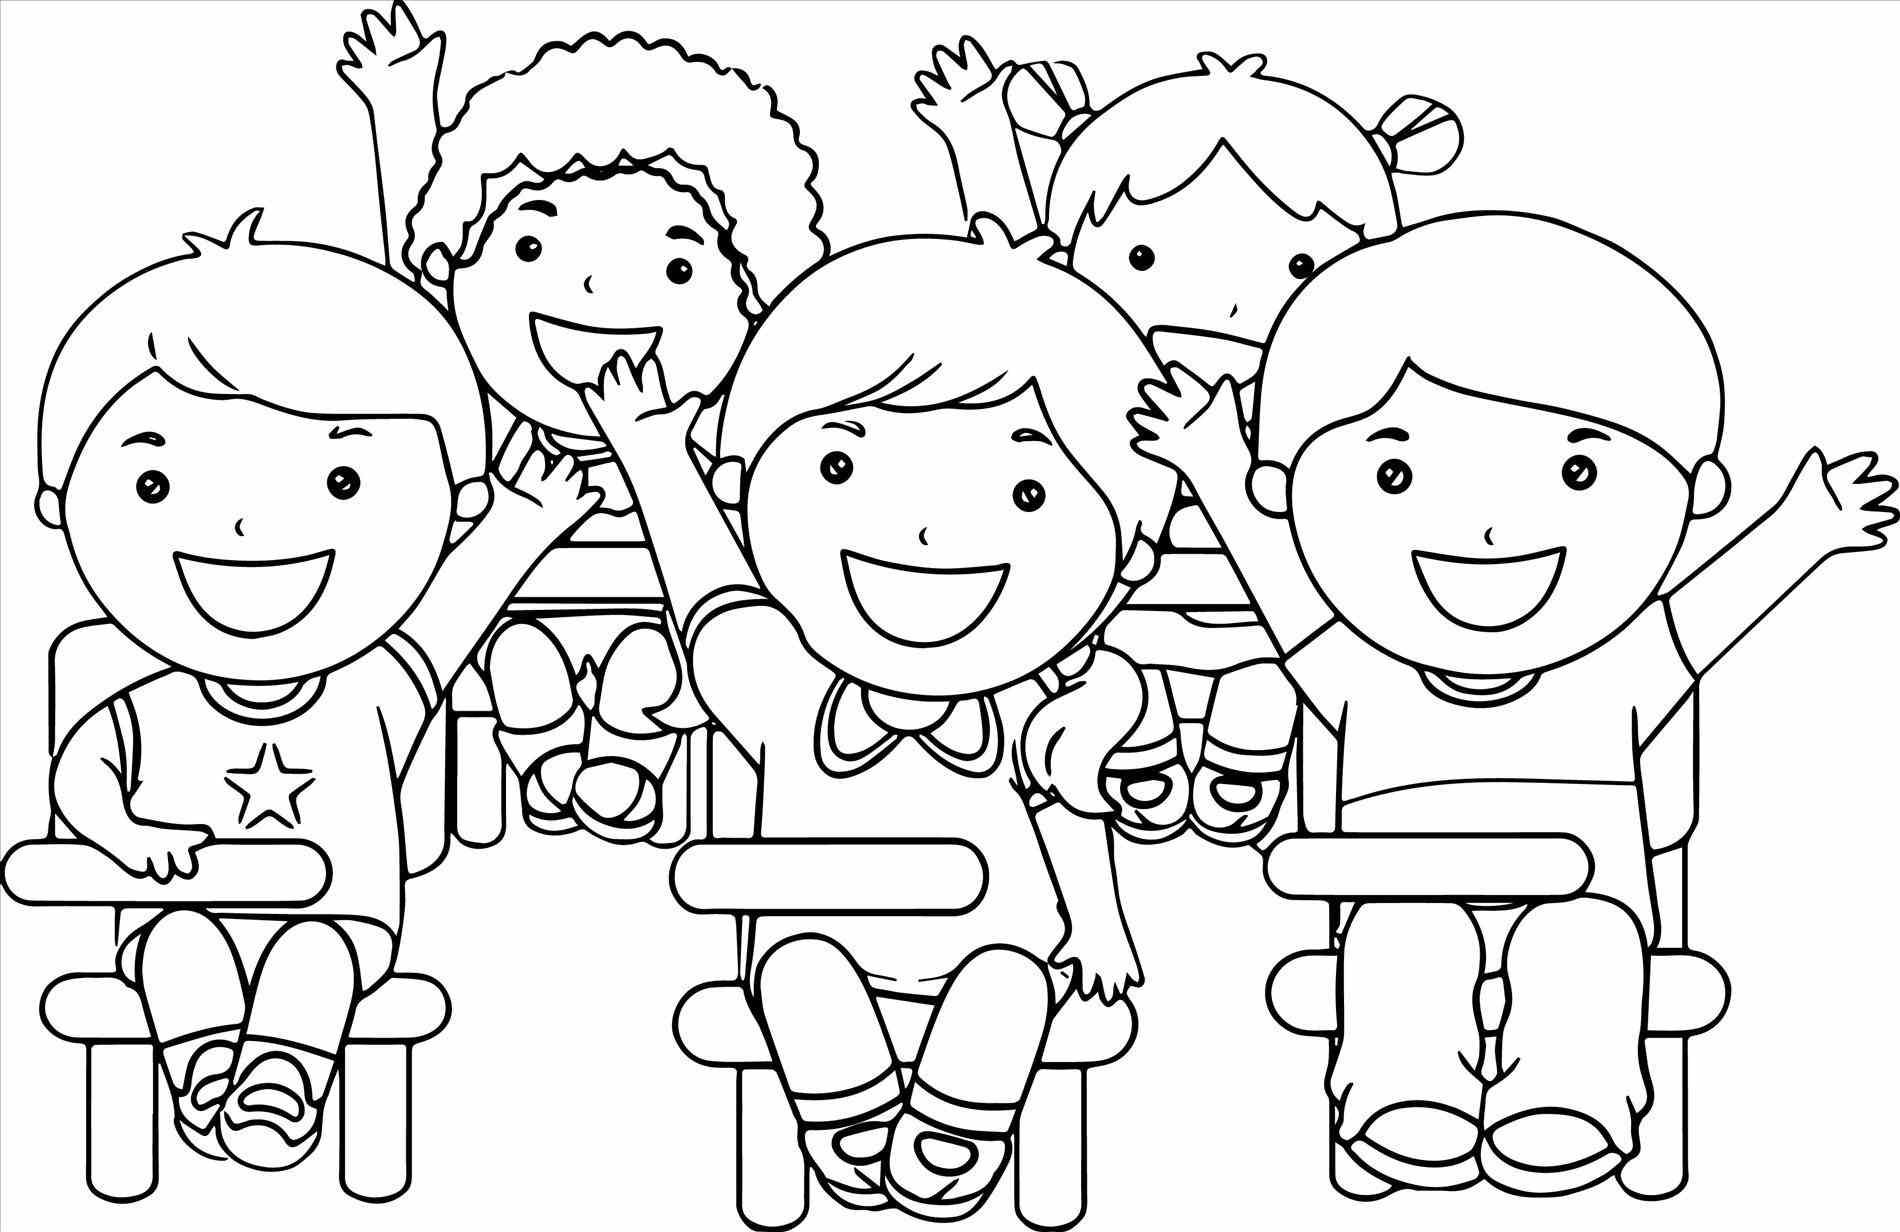 School Coloring Pages | School coloring pages, Coloring pages ... | 1232x1900